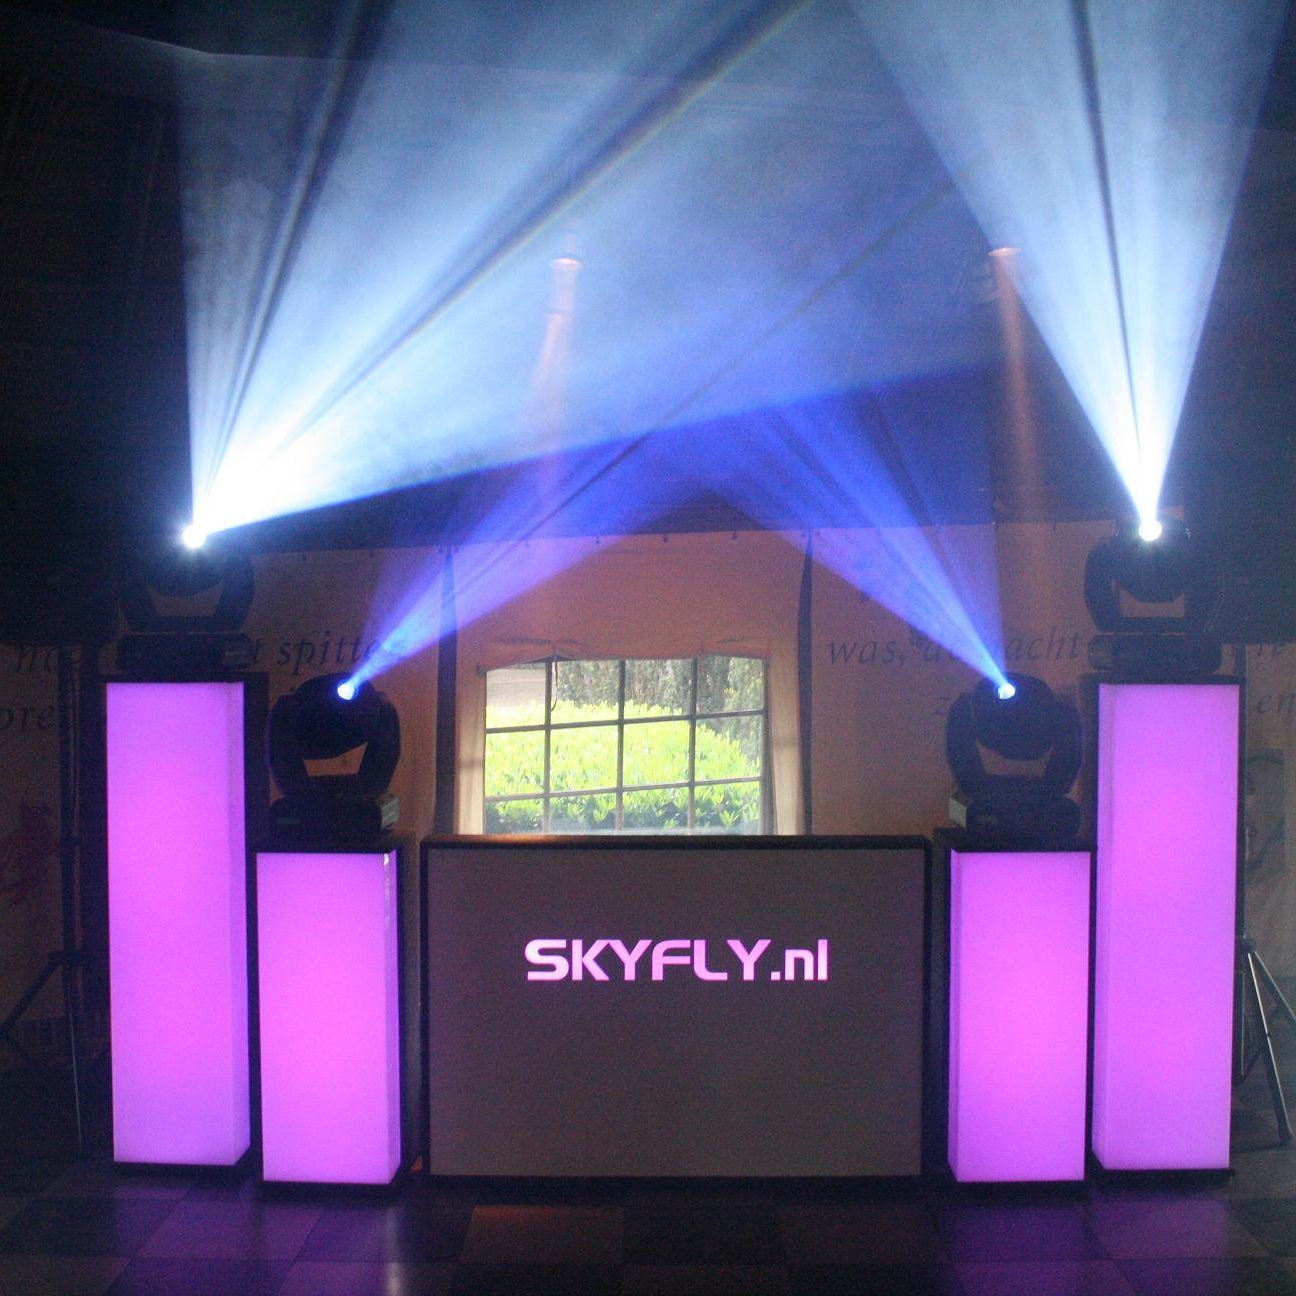 SKYFLY.nl We Are Entertainment